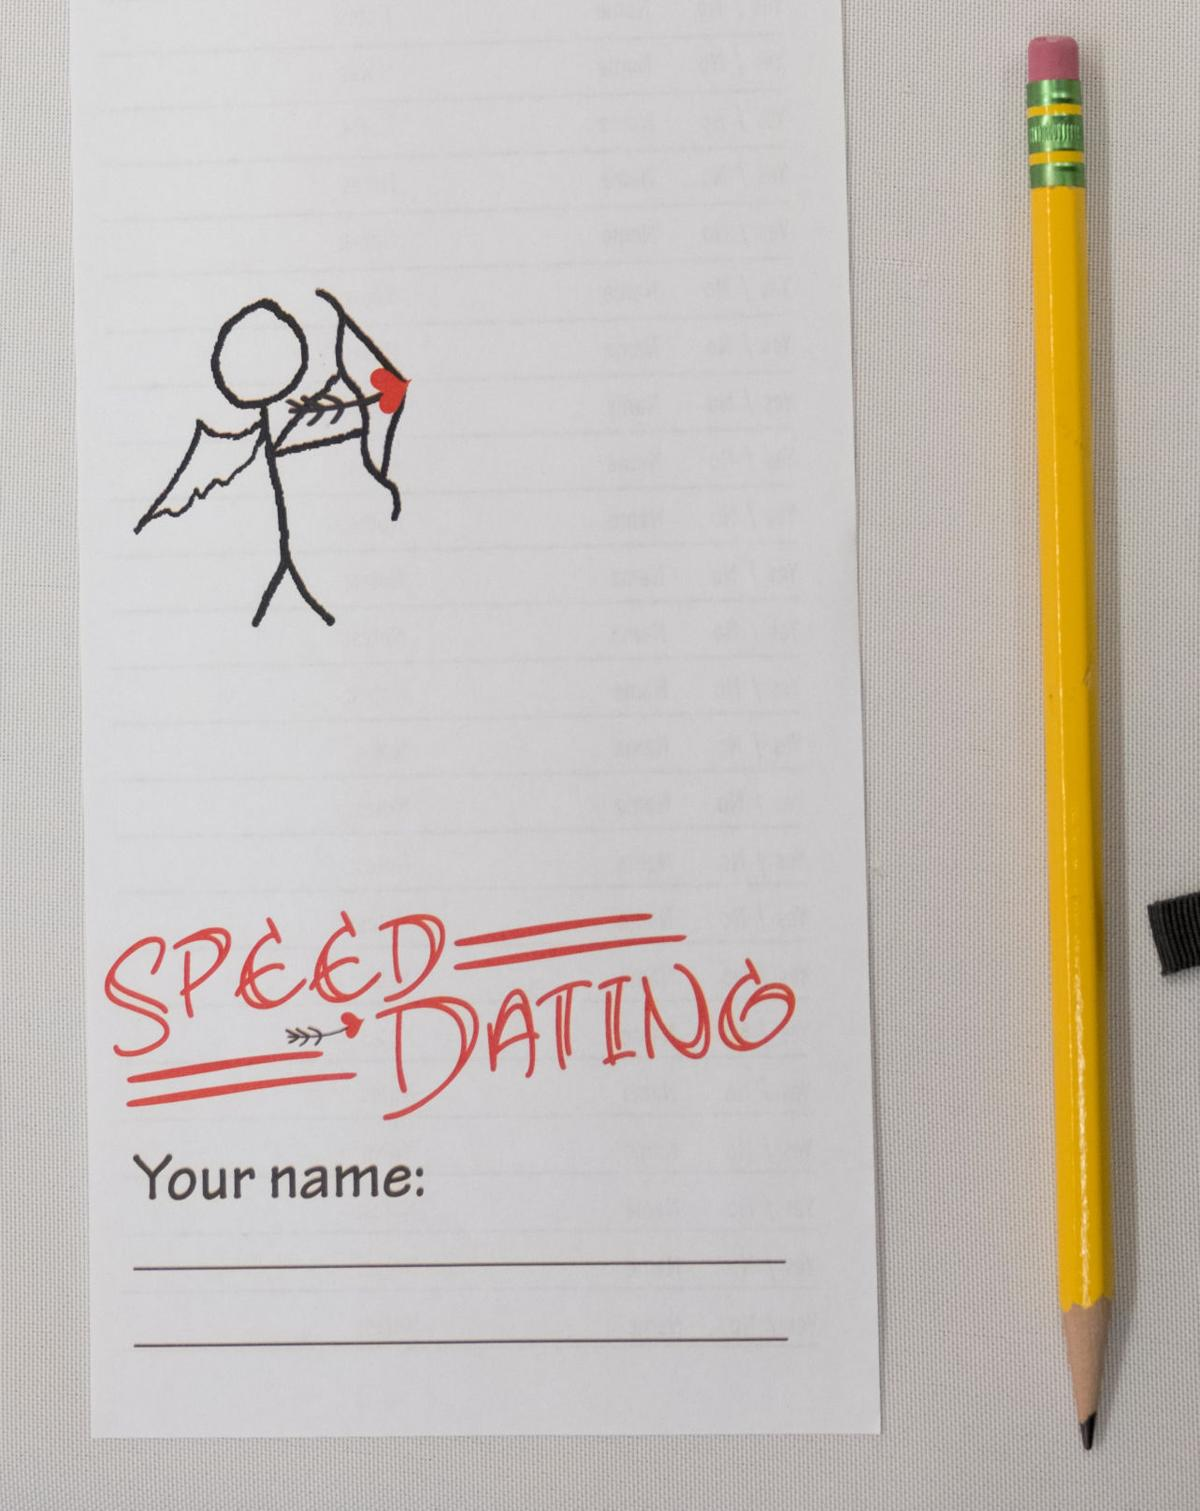 weekend speed dating Speed dating london is a fab way to meet like-minded london singles meet new people at london's most popular singles nights.